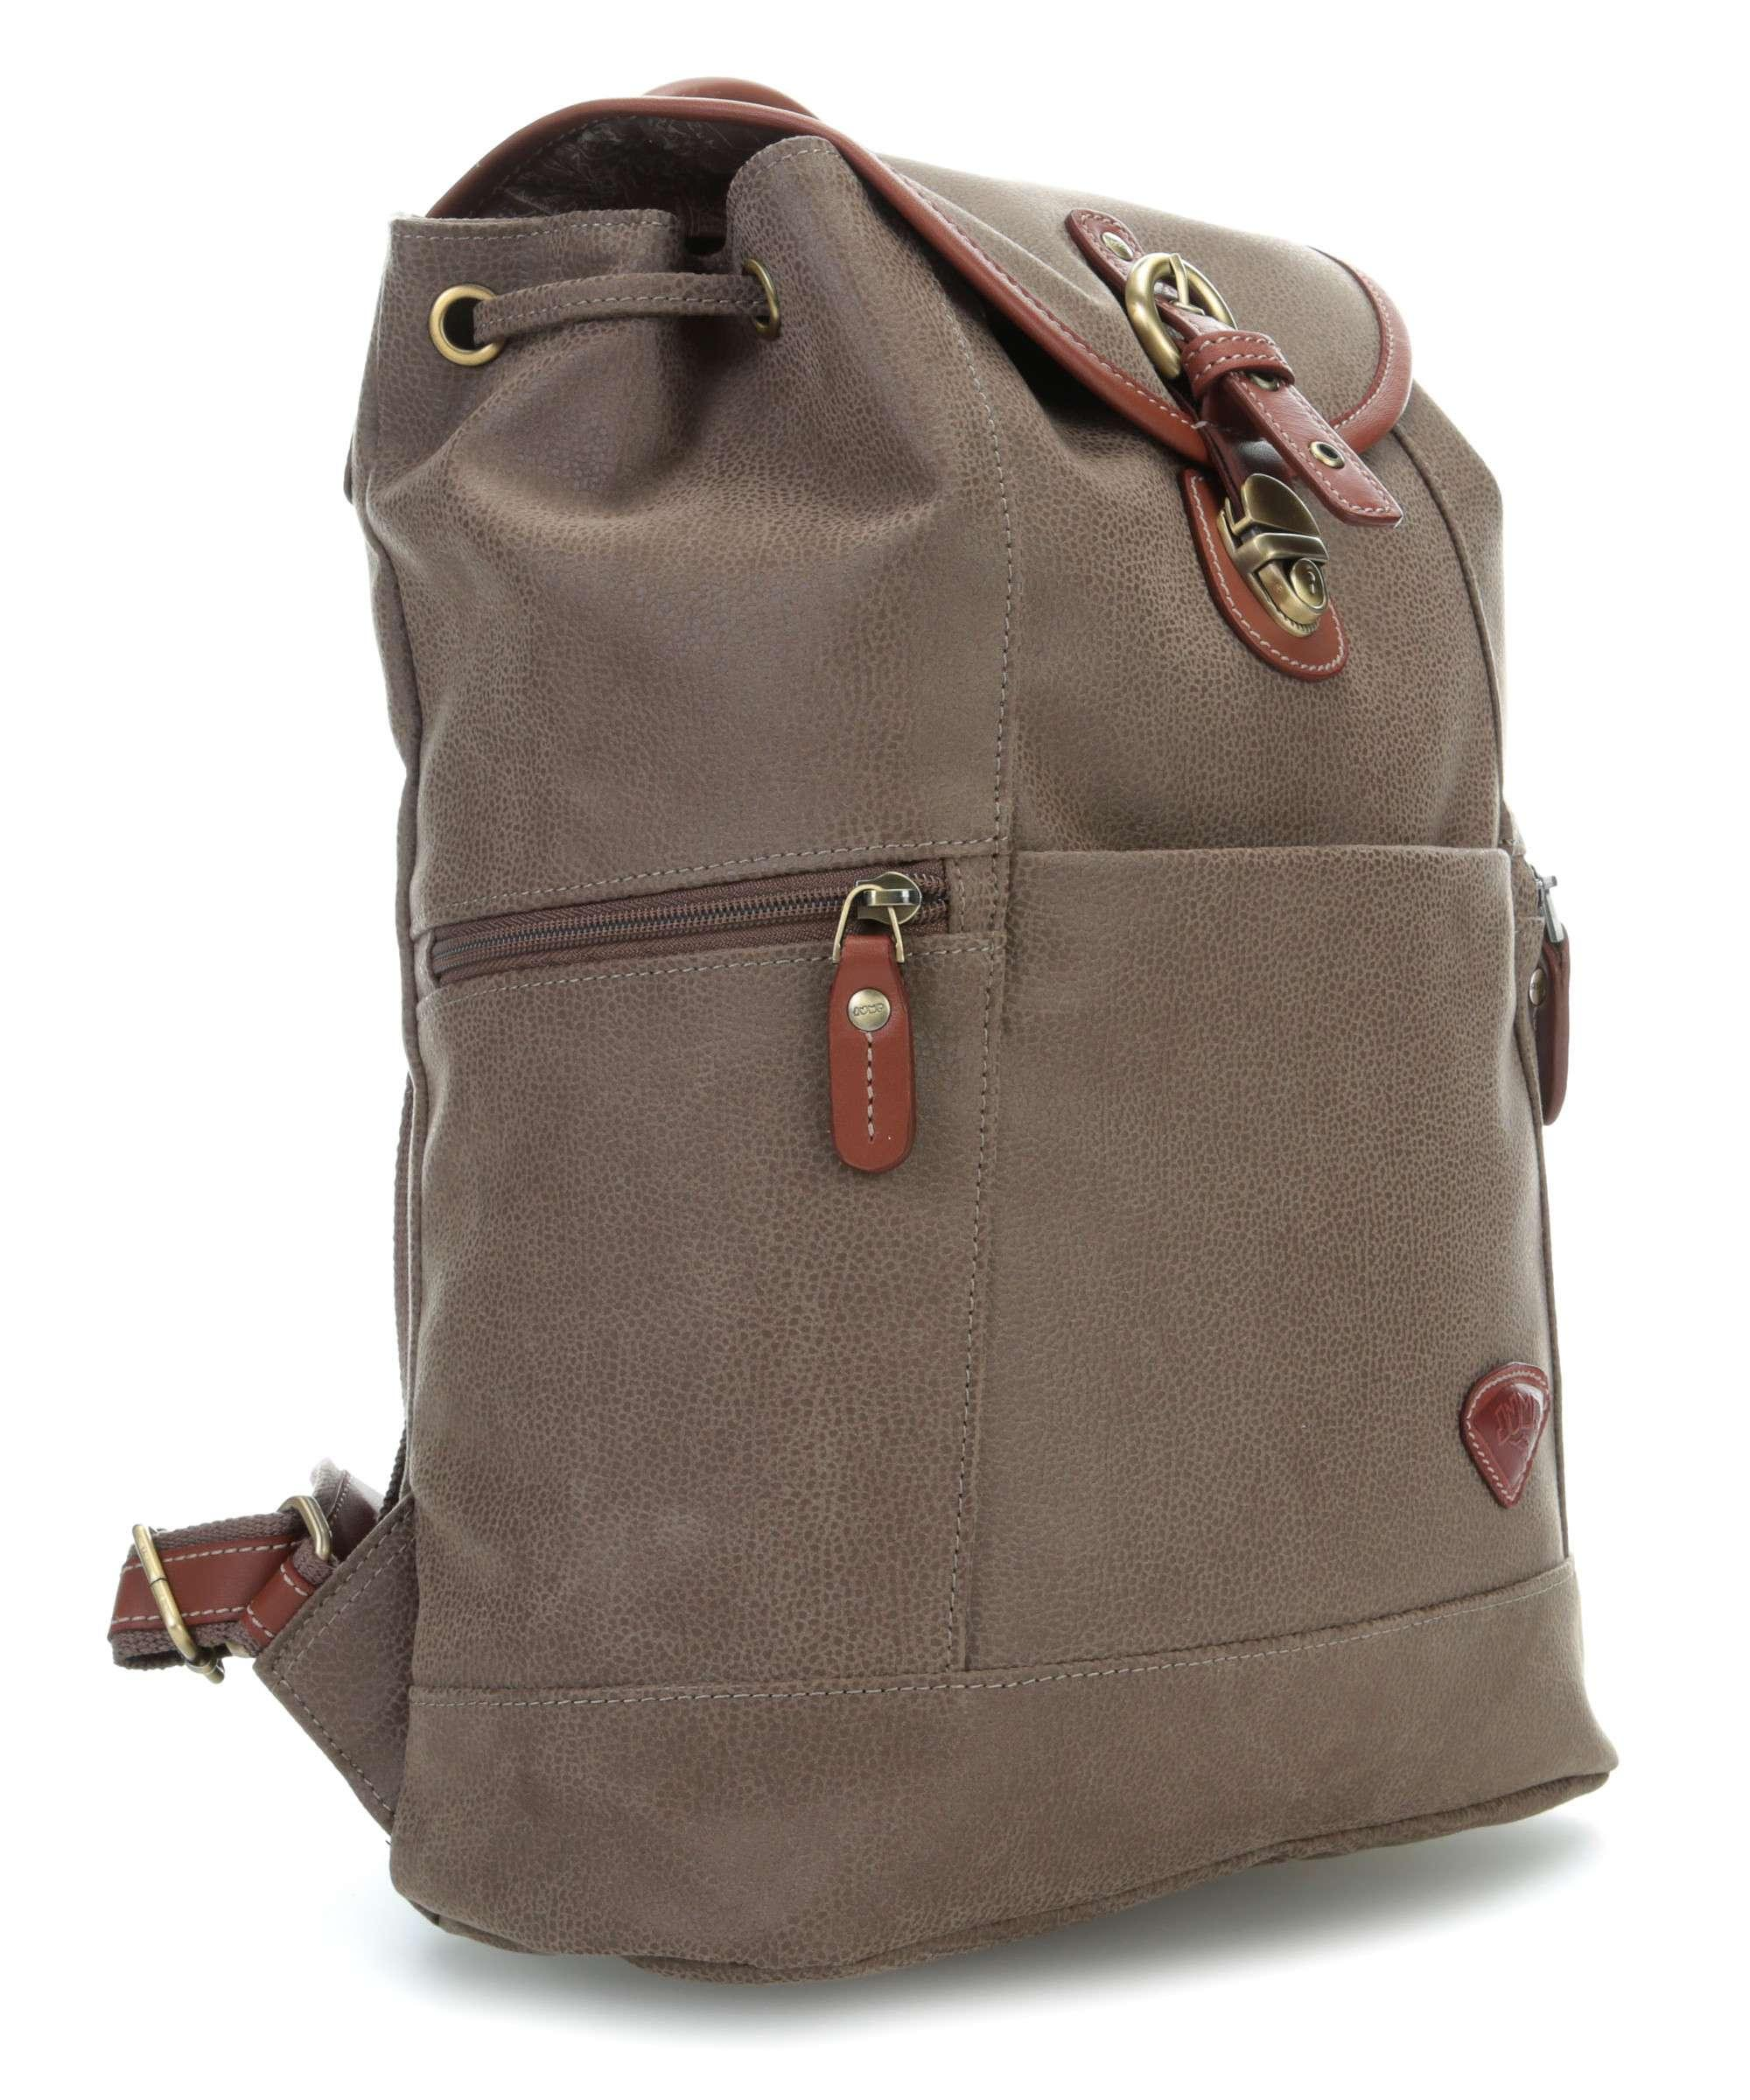 JUMP Uppsala Backpack with flap - 4437A